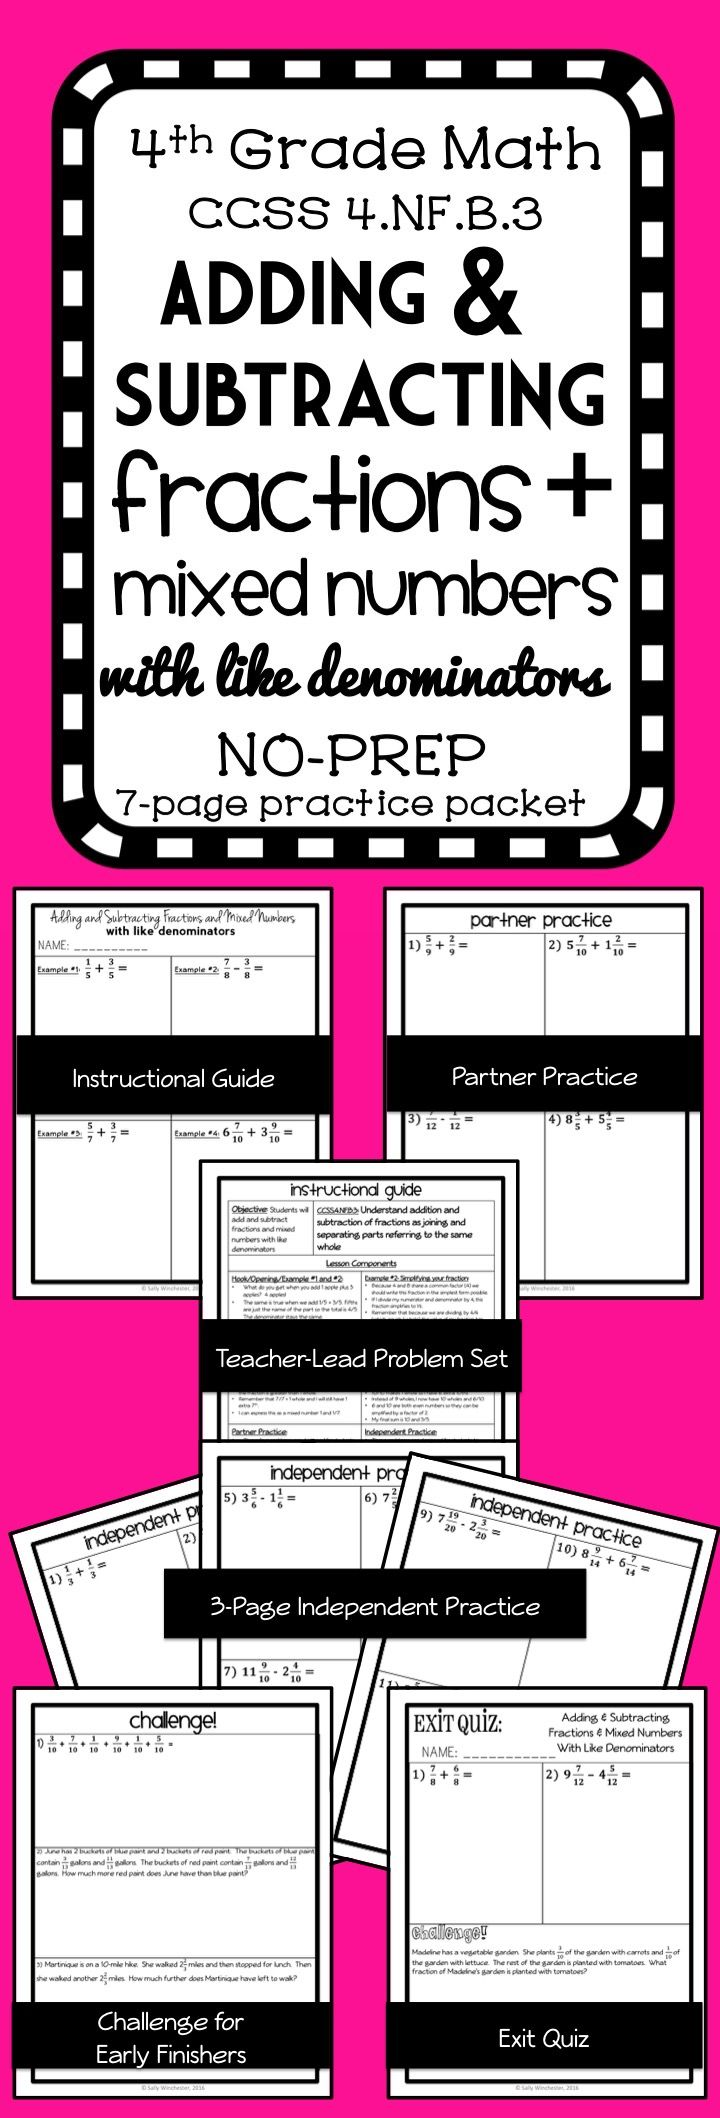 Adding and Subtracting Fractions and Mixed Numbers with Like Denominators: Complete 8-page Lesson Packet- Guided Notes and Exit Quiz, 4th Grade Math, 4.NF.3, Includes computation problems and word problems!